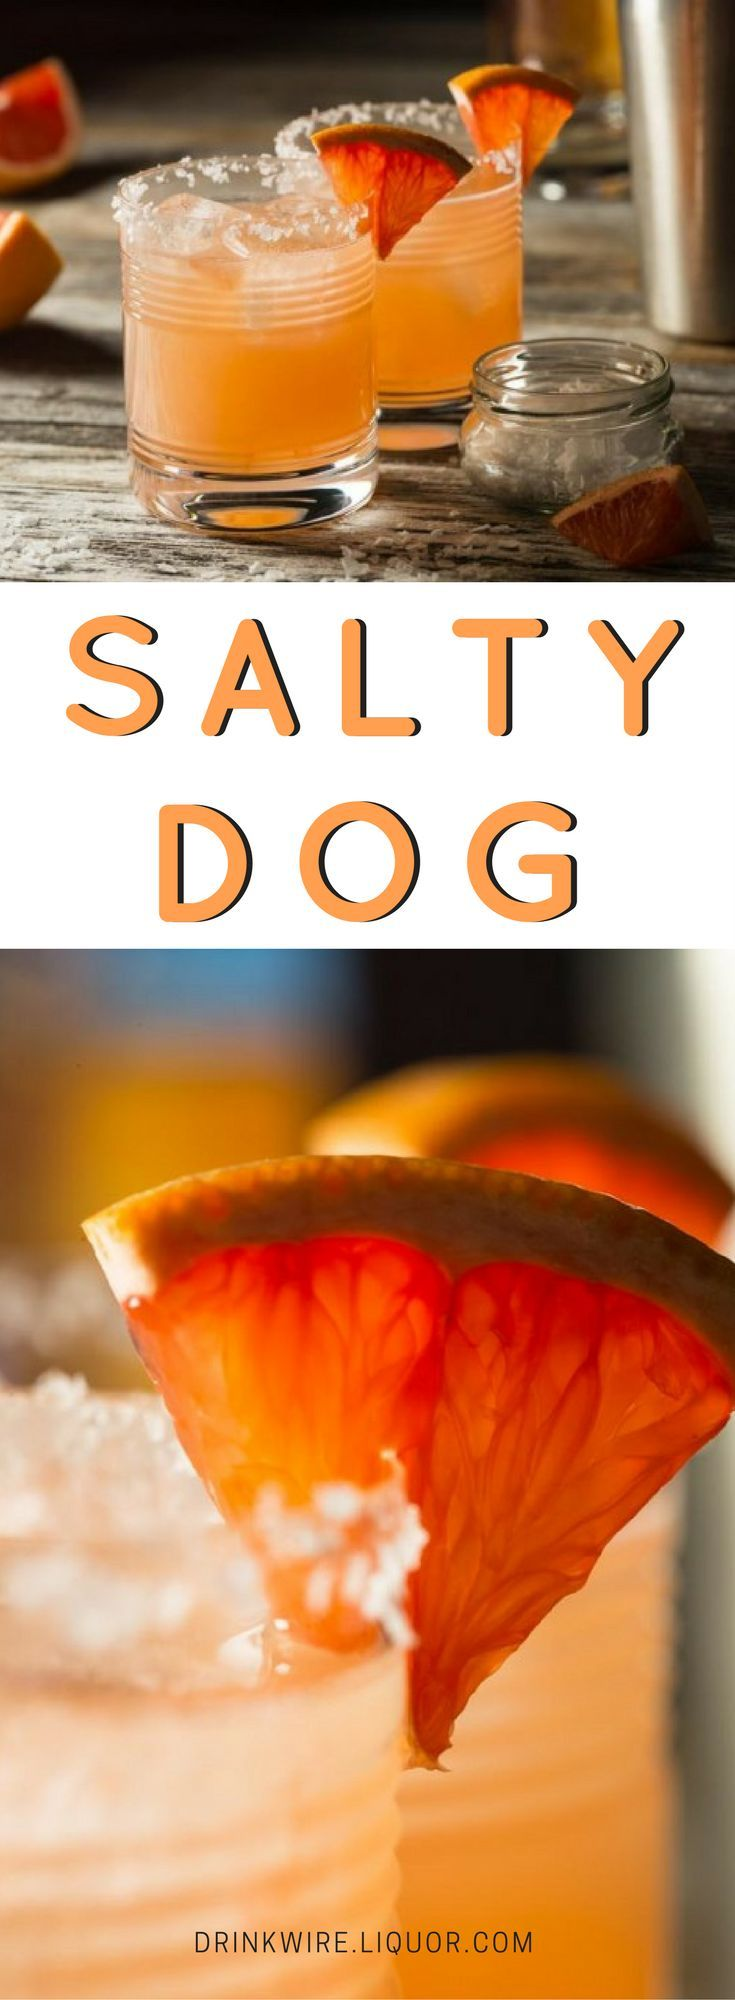 The Salty Dog cocktail is an easy-going mix of either gin or vodka with freshly squeezed grapefruit juice. These two ingredients are then shaken up and then served in an ice-filled, salt-rimmed cocktail glass. A similar drink of gin and grapefruit was popular in the 1930s and 40s and was known as a Greyhound.